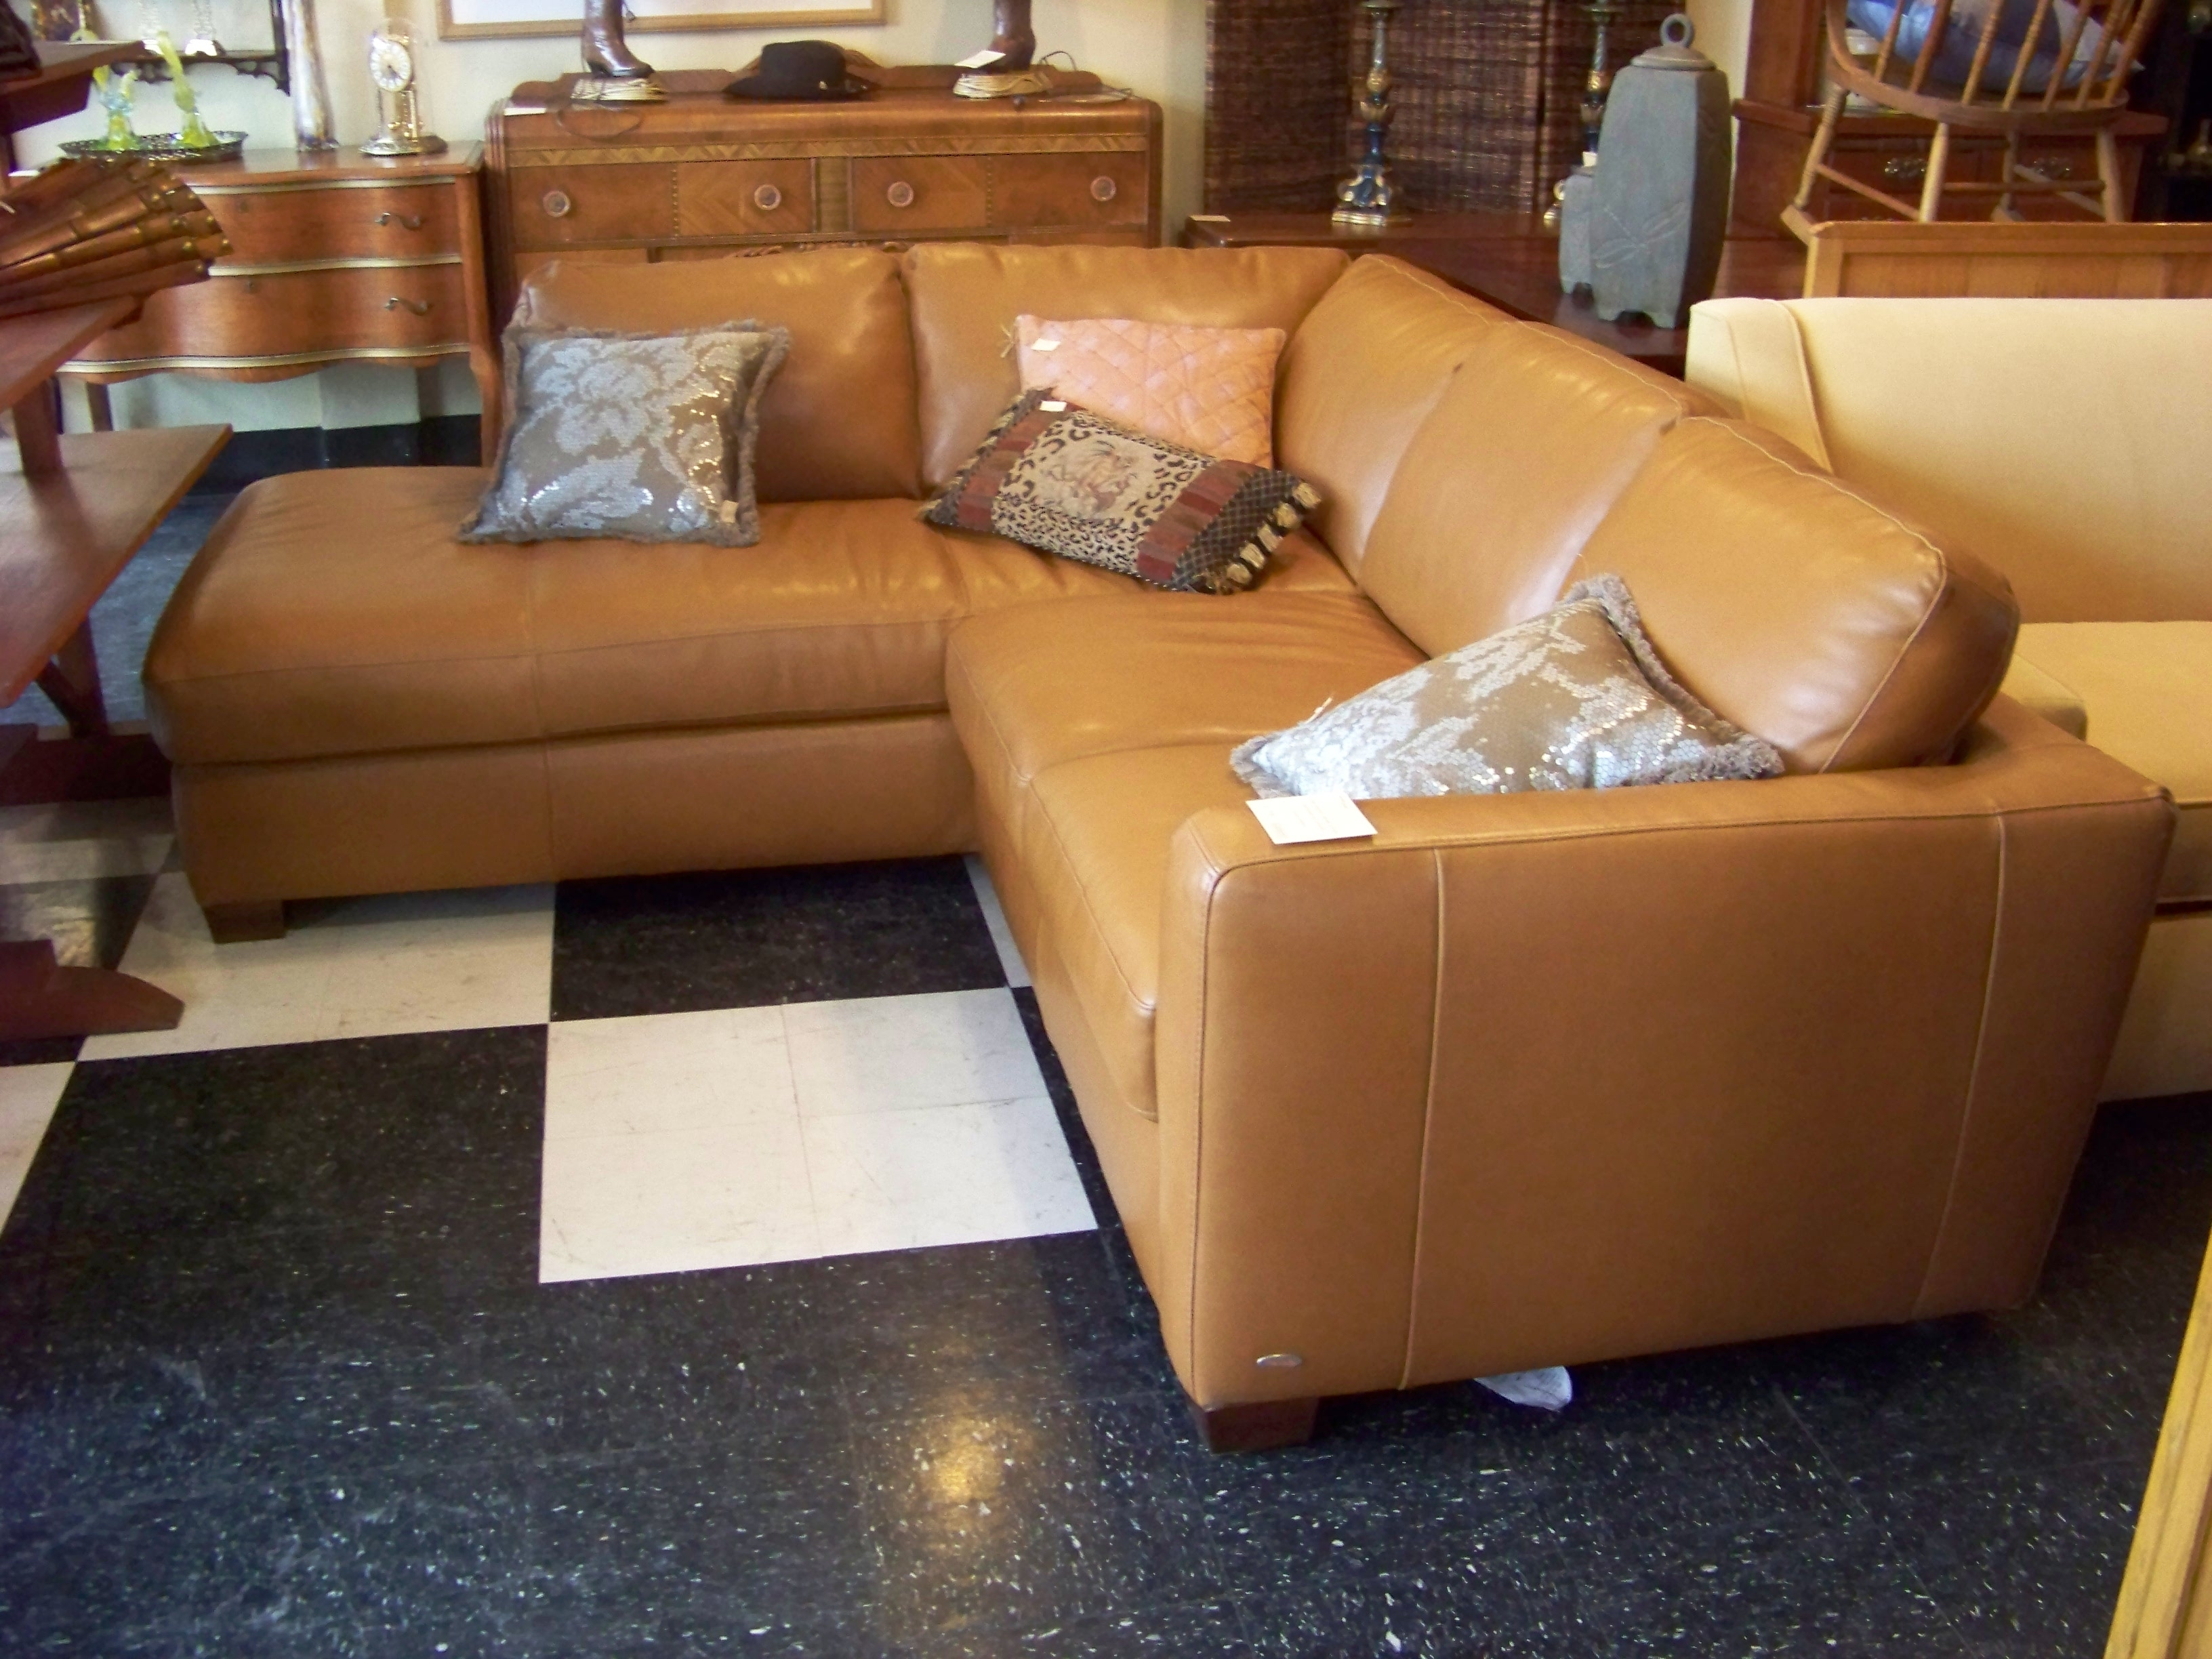 Interior Small Sectional Sofa White Seater Used Leather Colored throughout Camel Colored Sectional Sofas